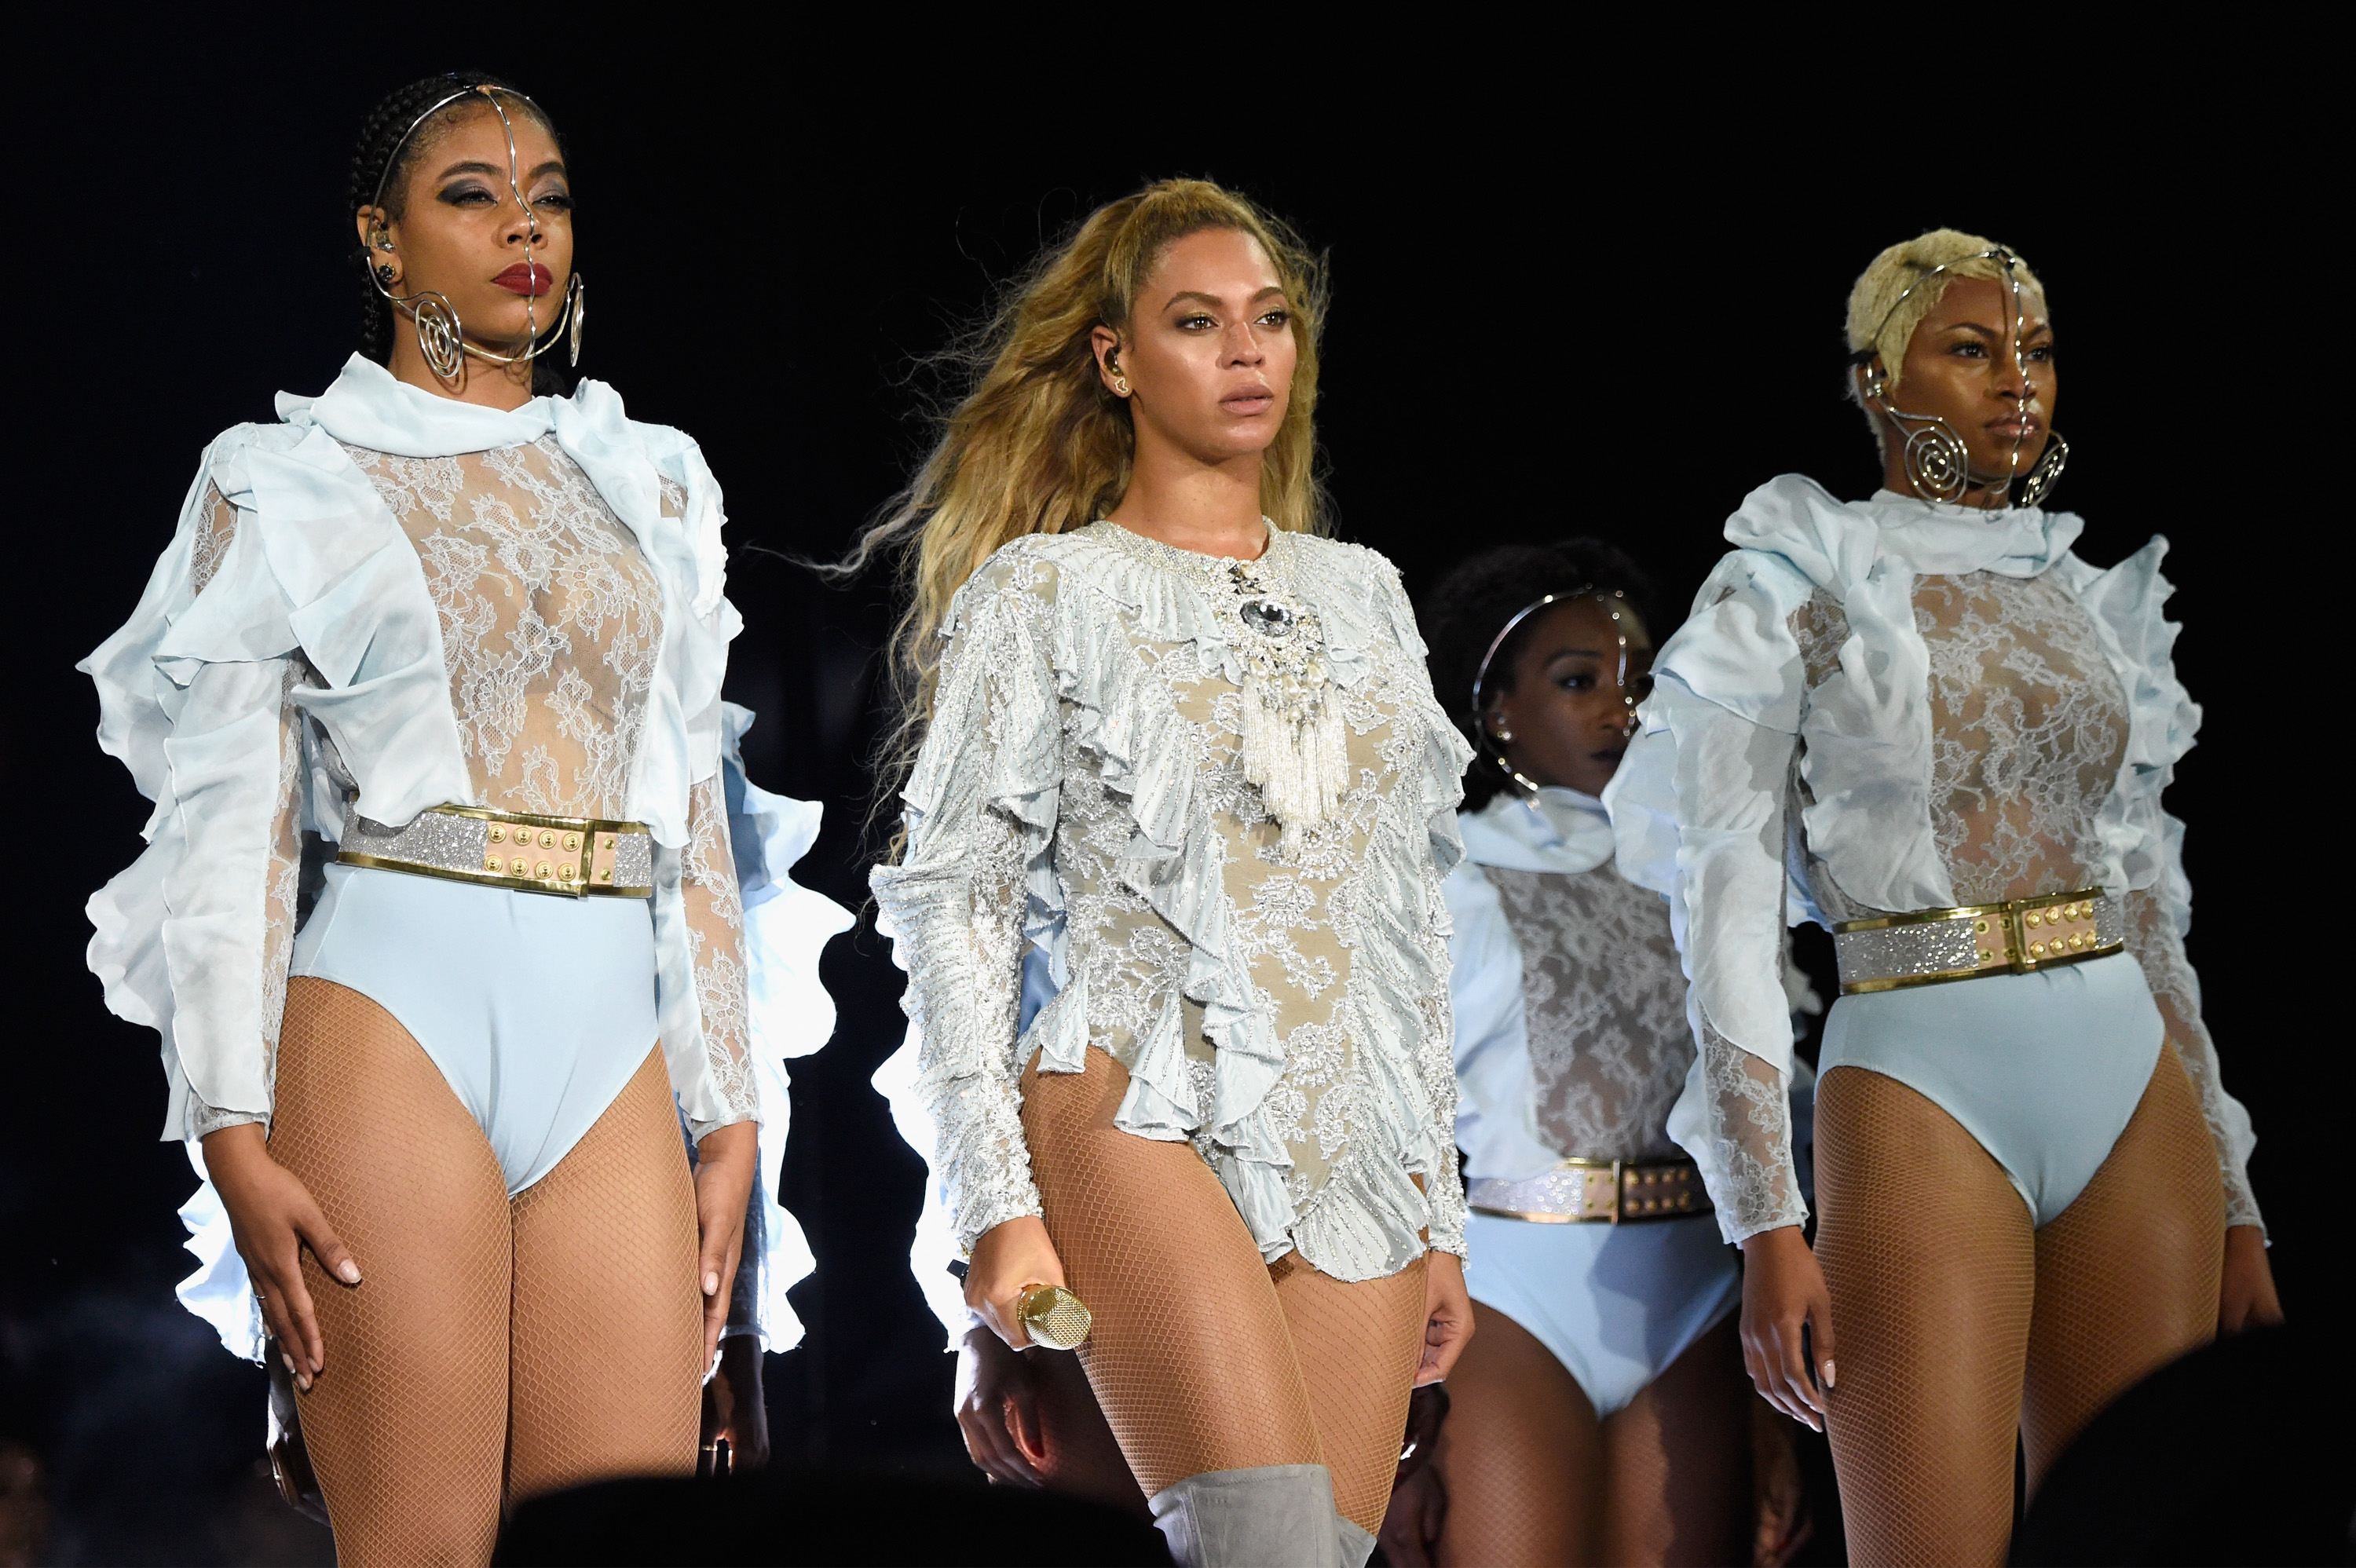 Beyonce performs on stage during  The Formation World Tour  at Levi's Stadium on September 17, 2016 in Santa Clara, California.